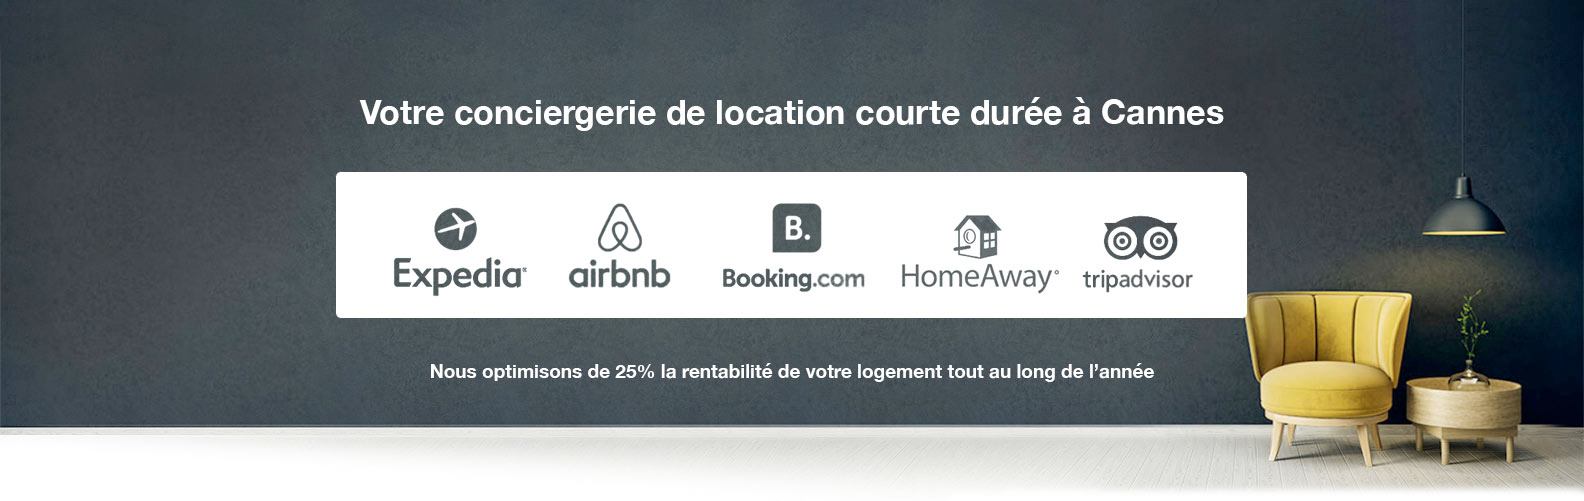 Gestion locative airbnb à Cannes